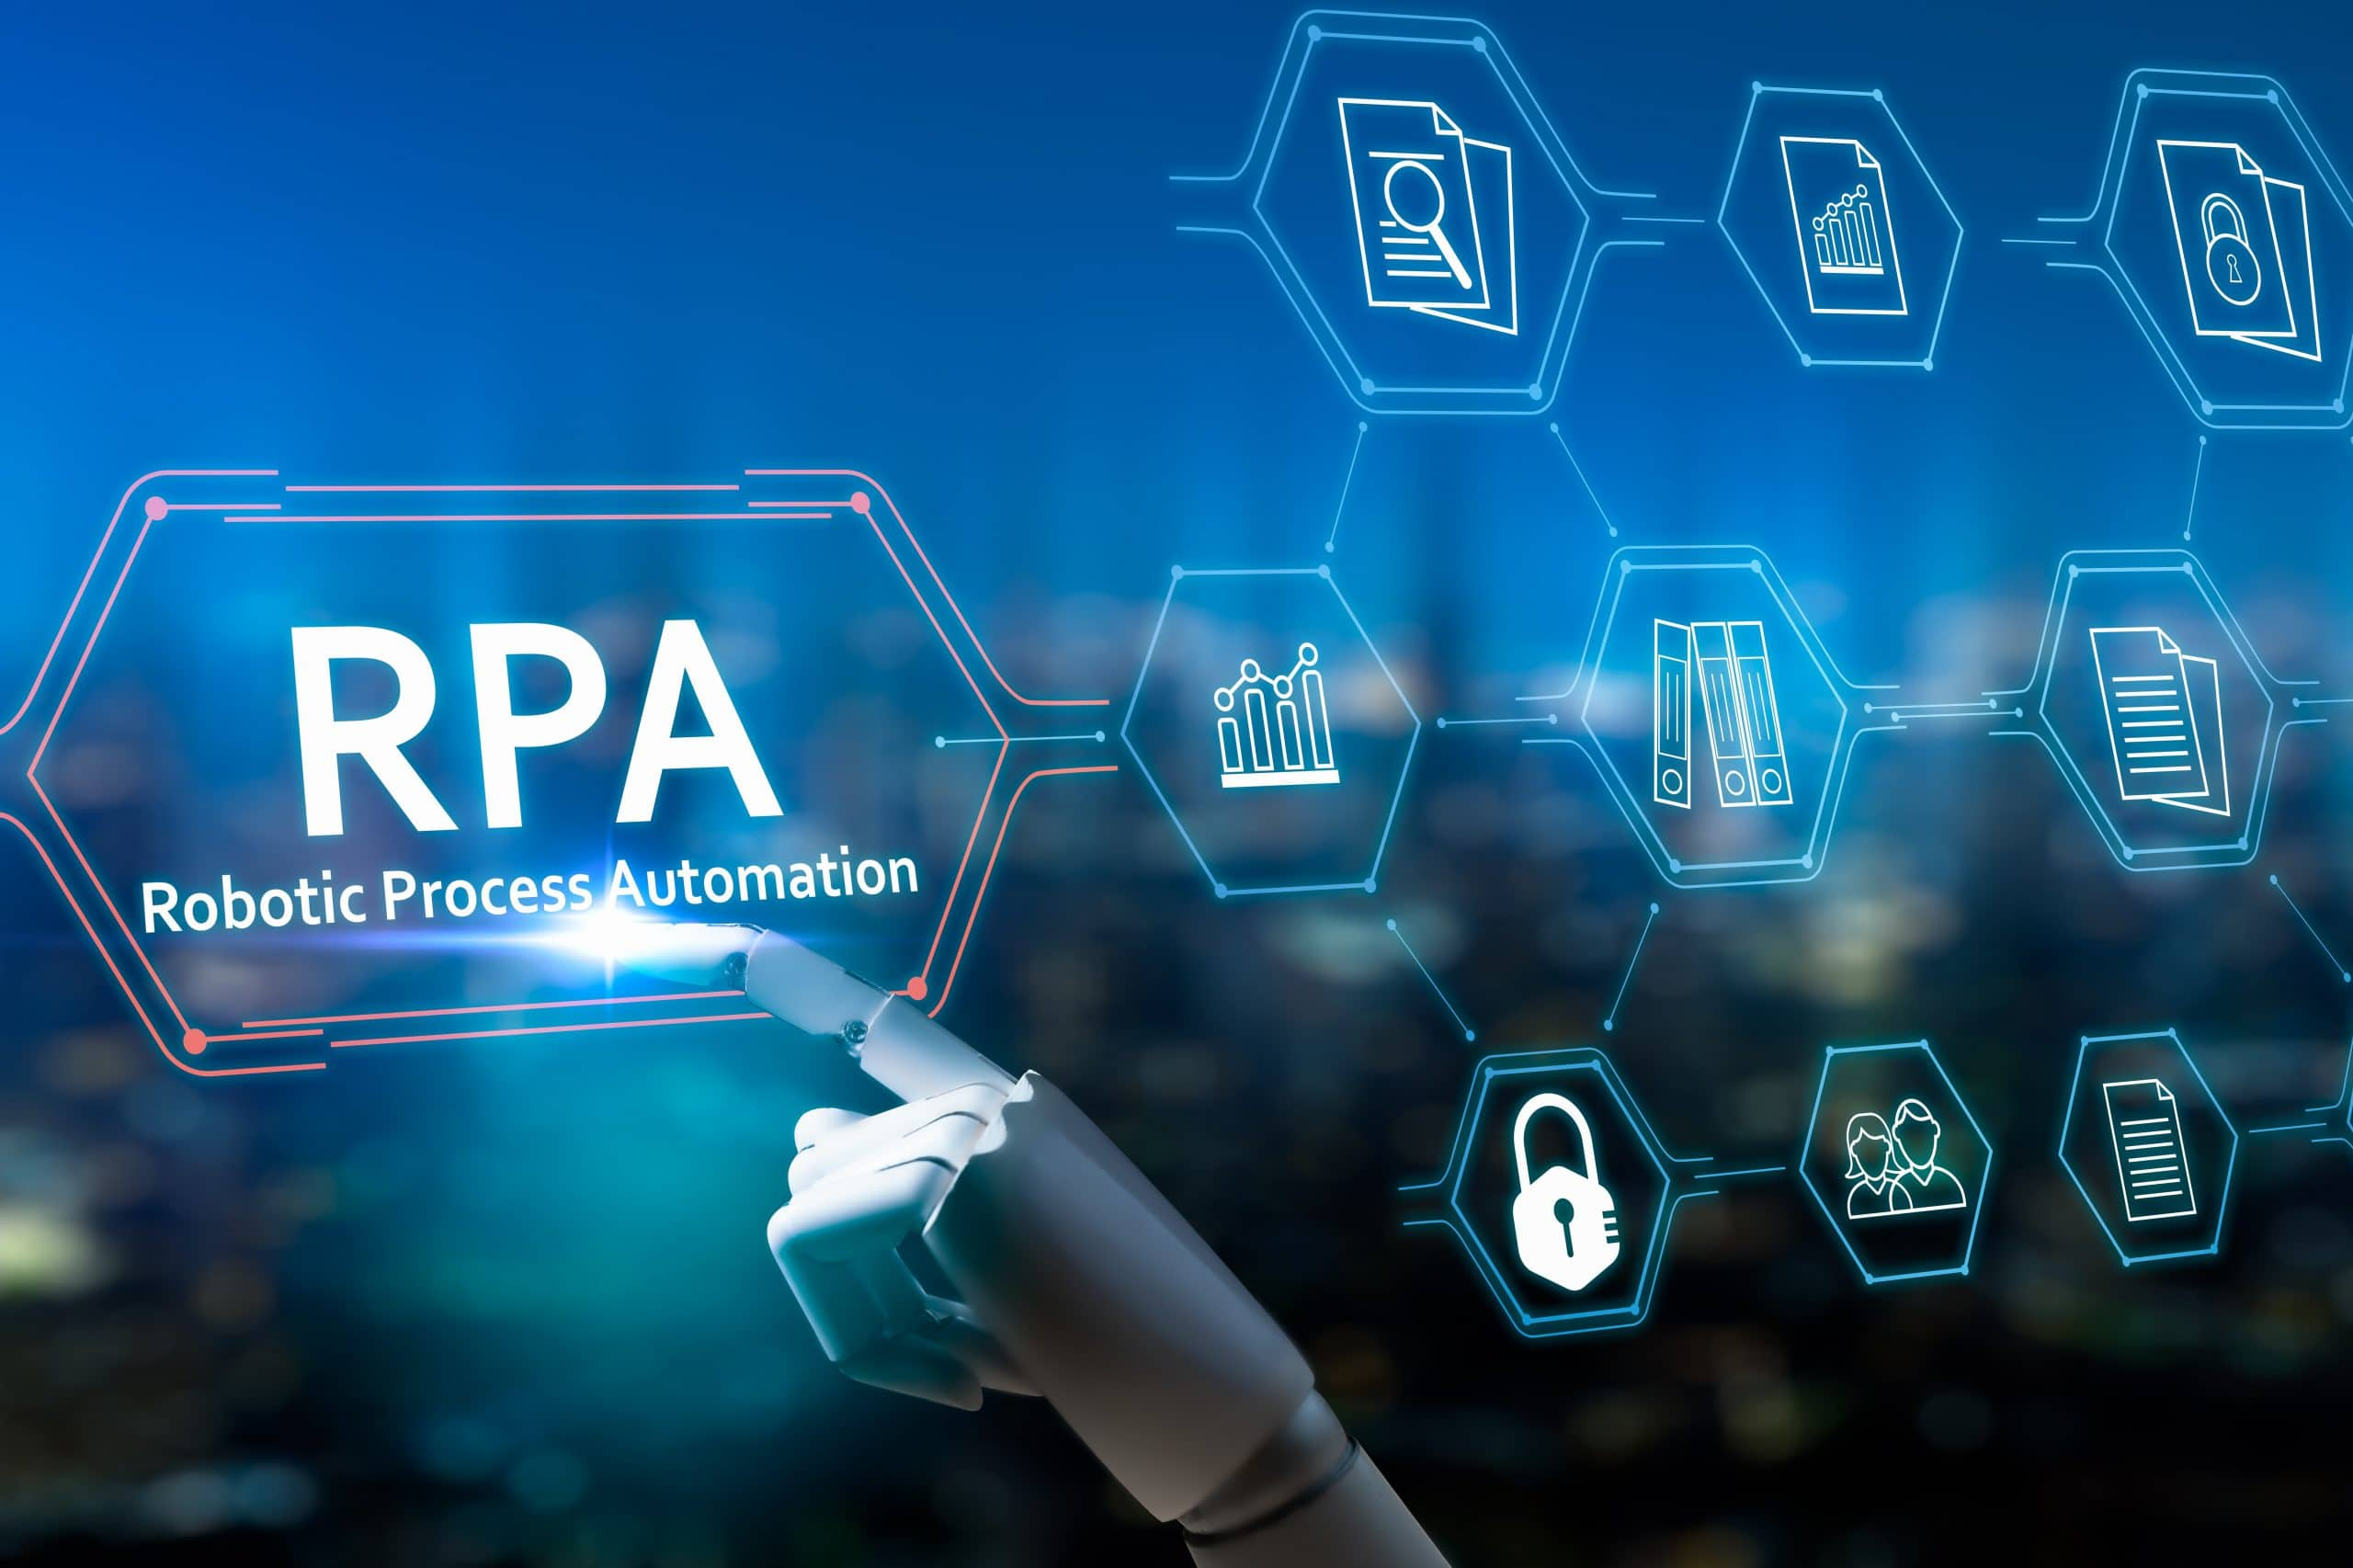 RPA (Robotic Process Automation system),Artificial intelligence , Robot finger,robo advisor ,Big data and business concept.Robot finger on blurred background using digital RPA interface.